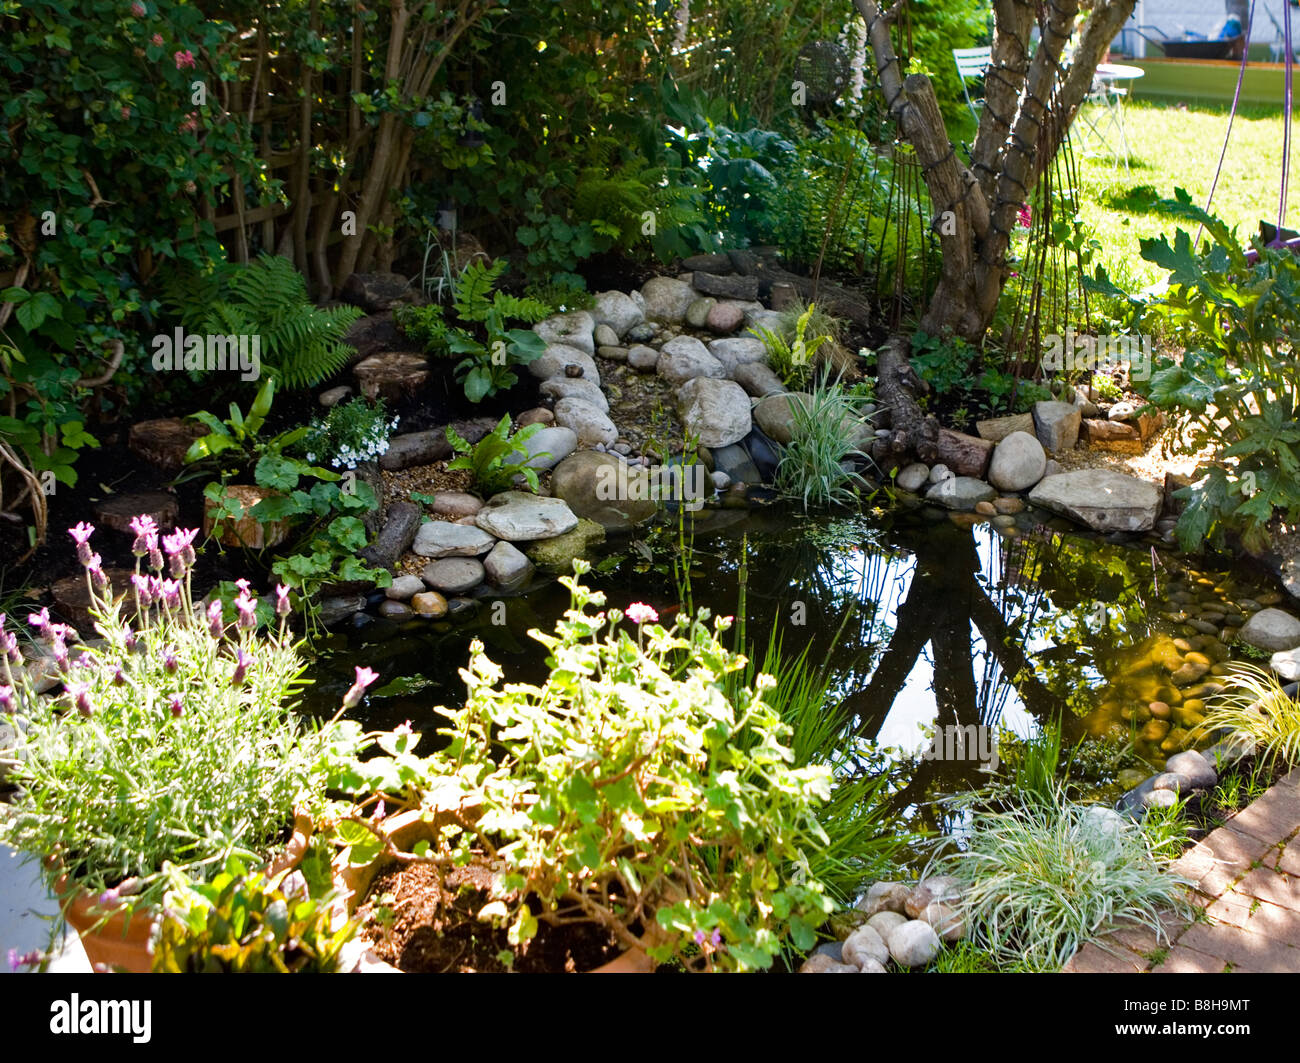 Wildlife garden pond - Stock Image